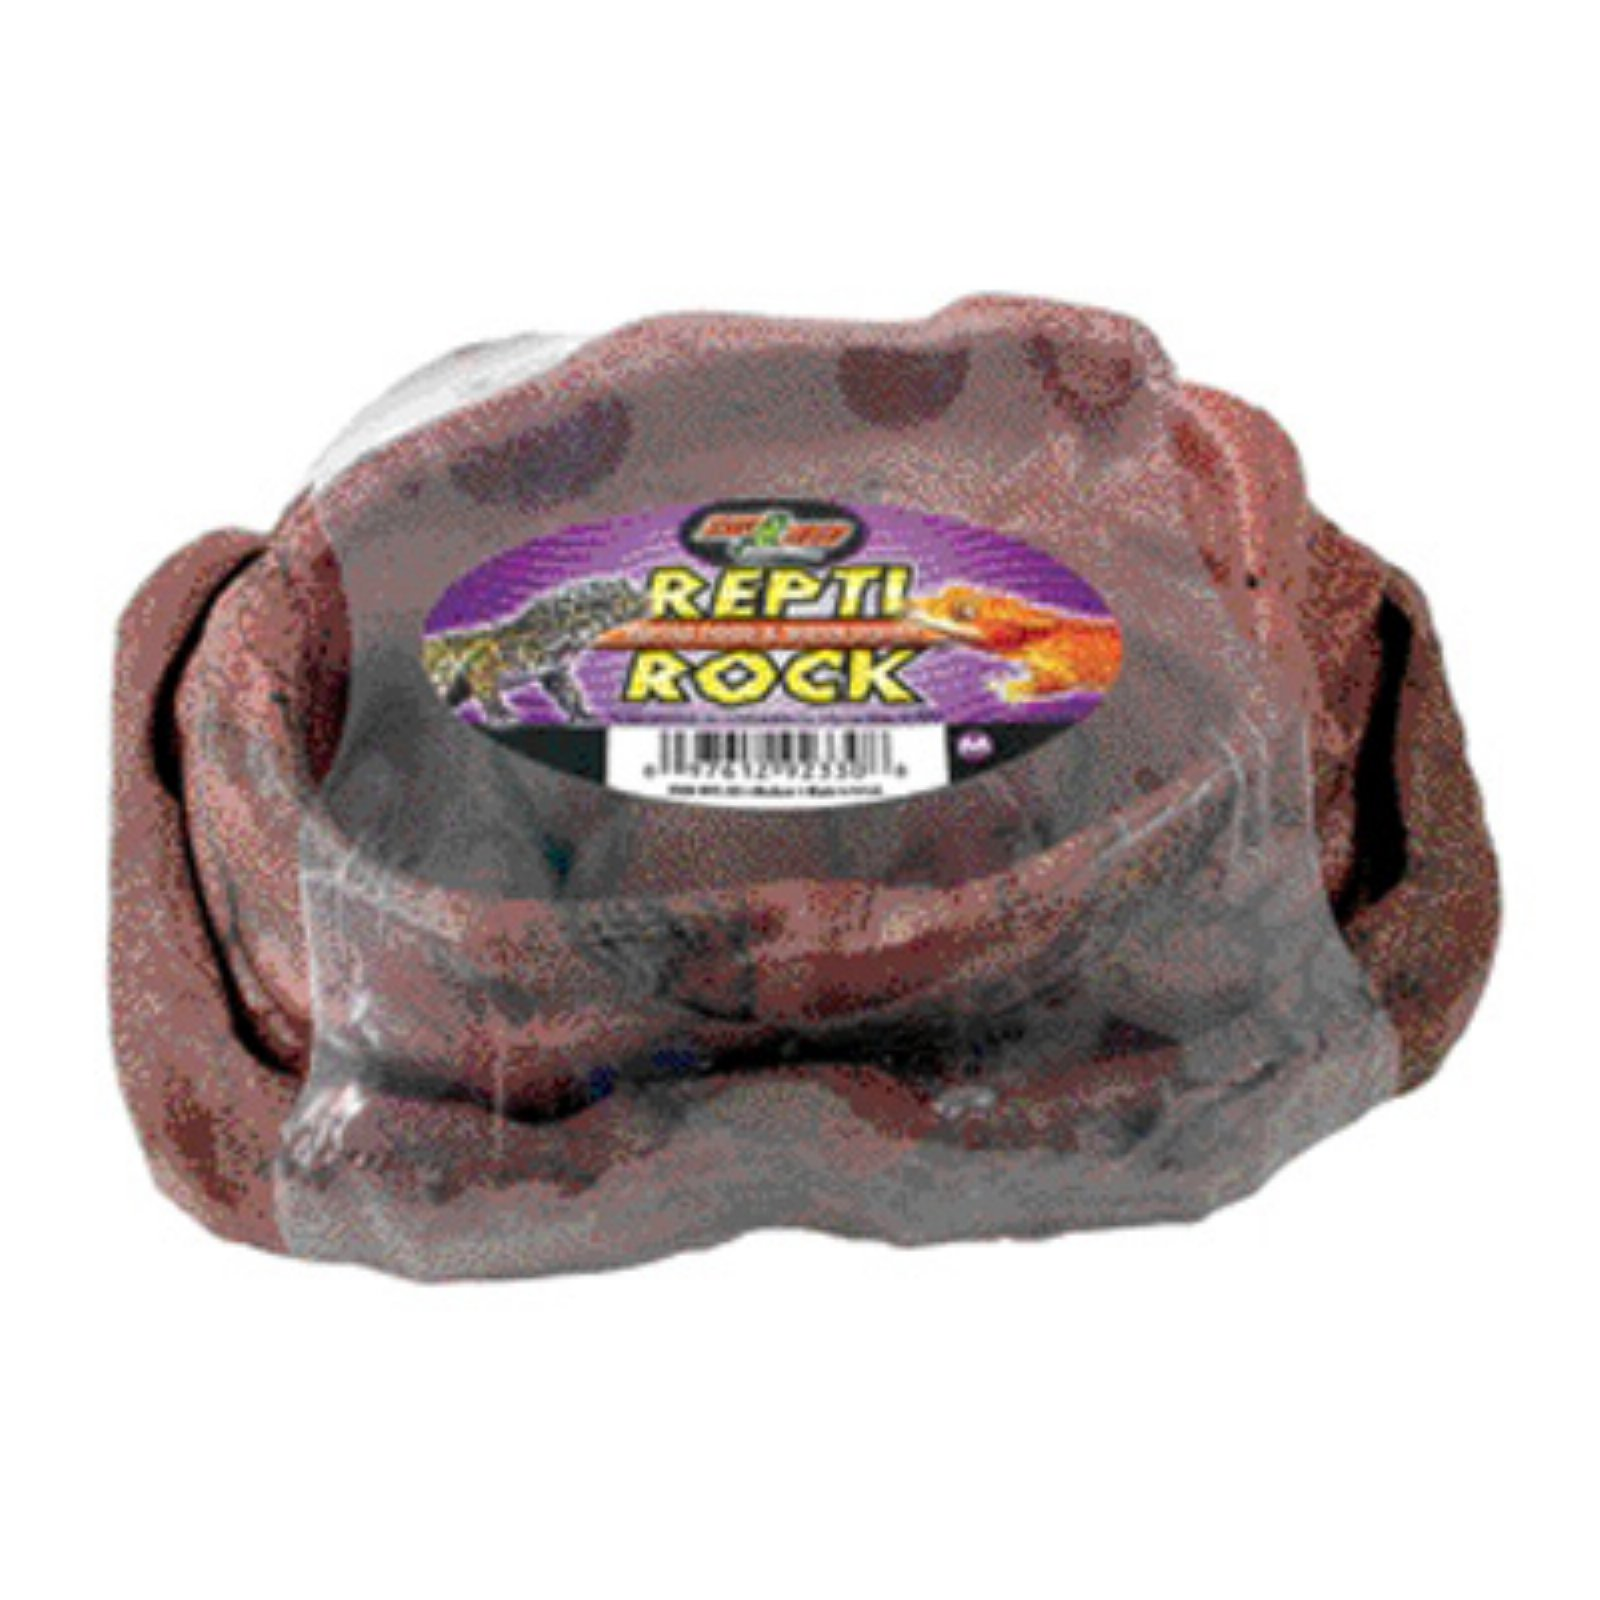 Zoo Med Repti Rock Reptile Food and Water Dishes, Medium